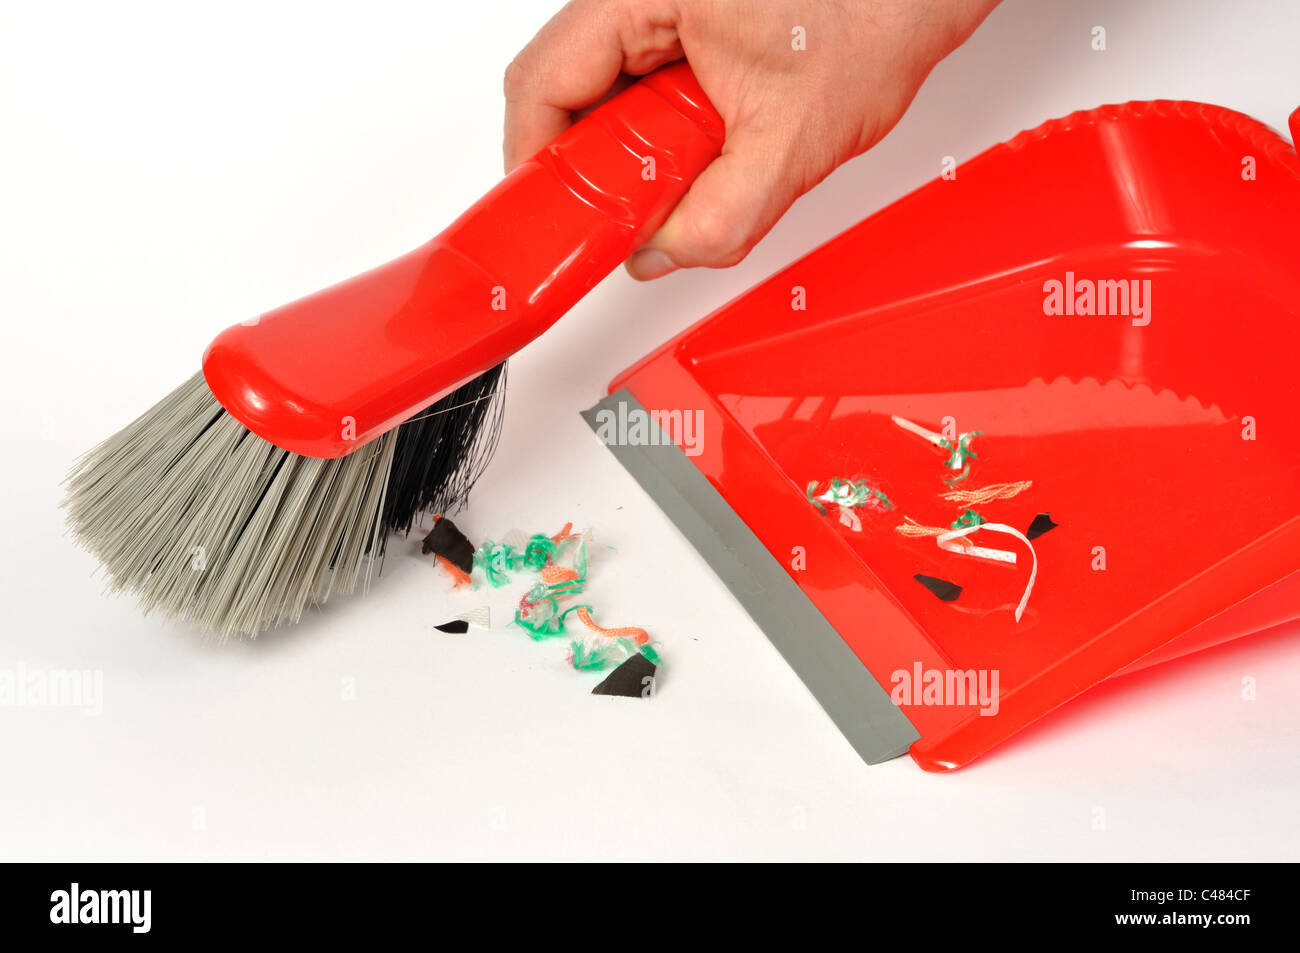 Red brush and dustpan with some garbage on white background - Stock Image